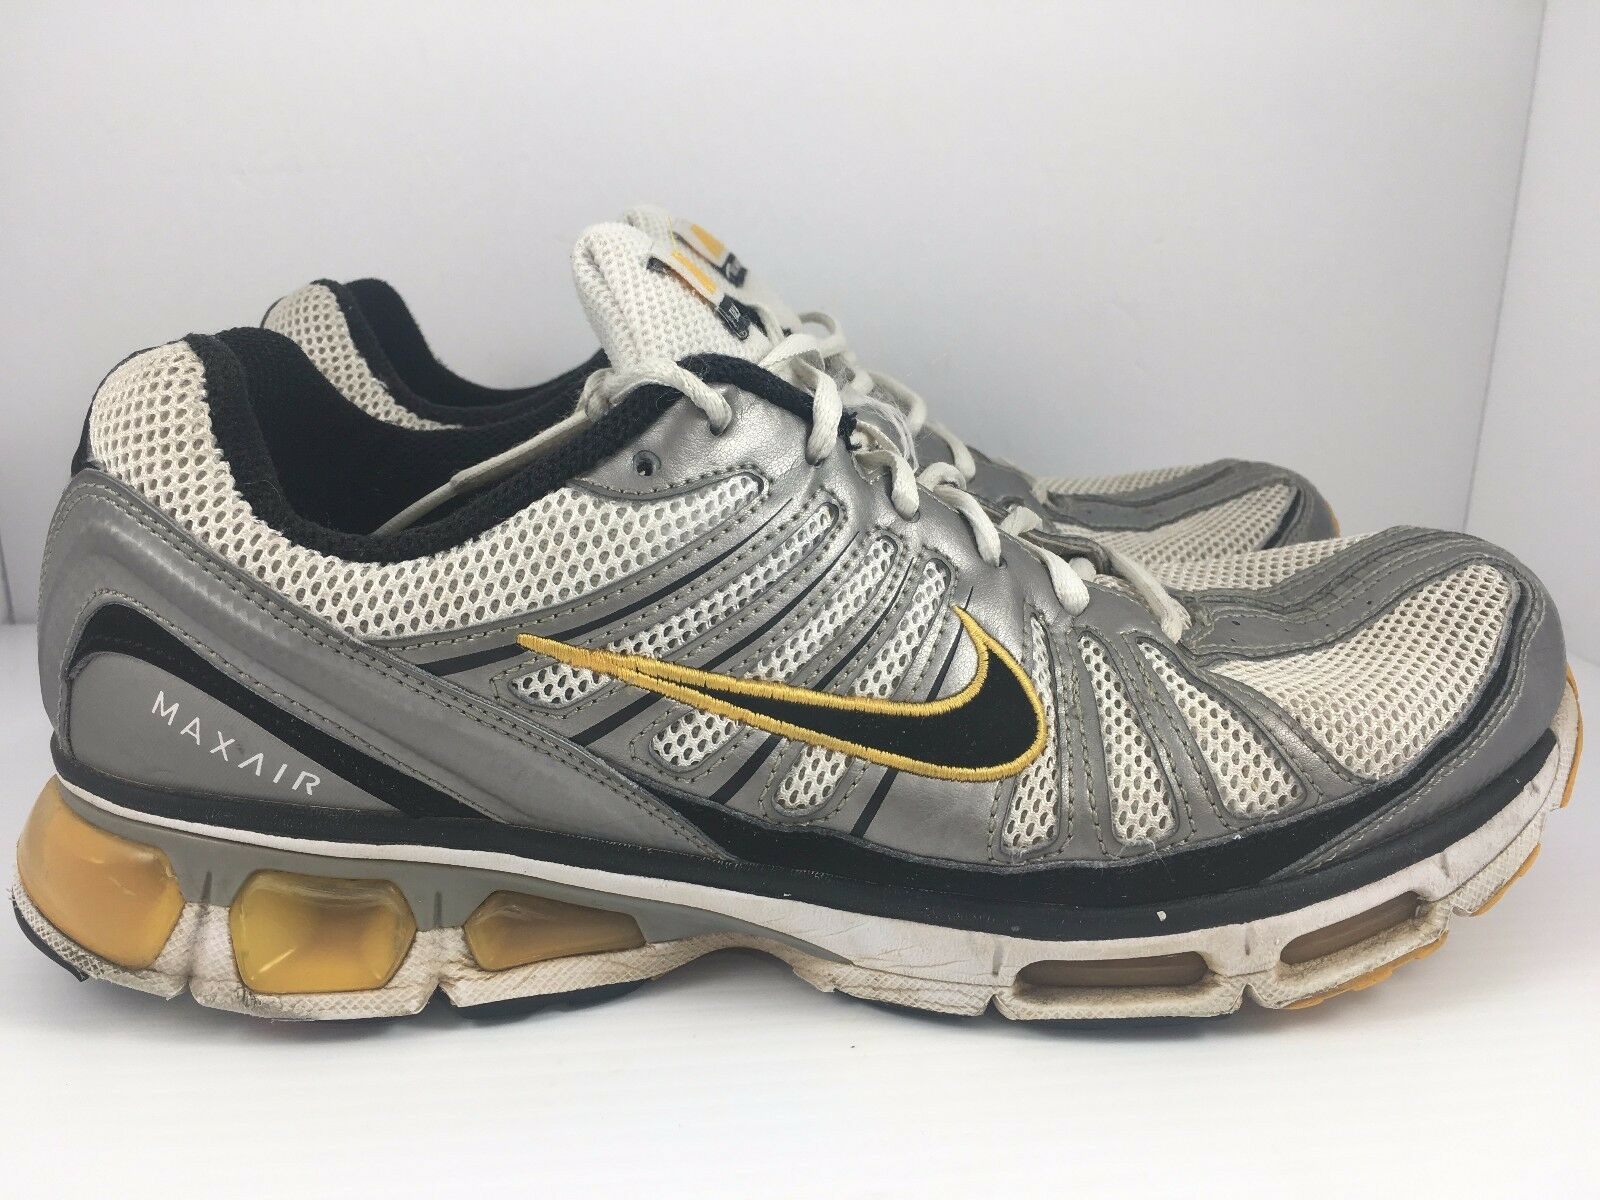 1c5af5f9d1 ... NIKE Air Max Tailwind 2009 Men US 11 White Silver Yellow Yellow Silver  Shoes 344758- ...